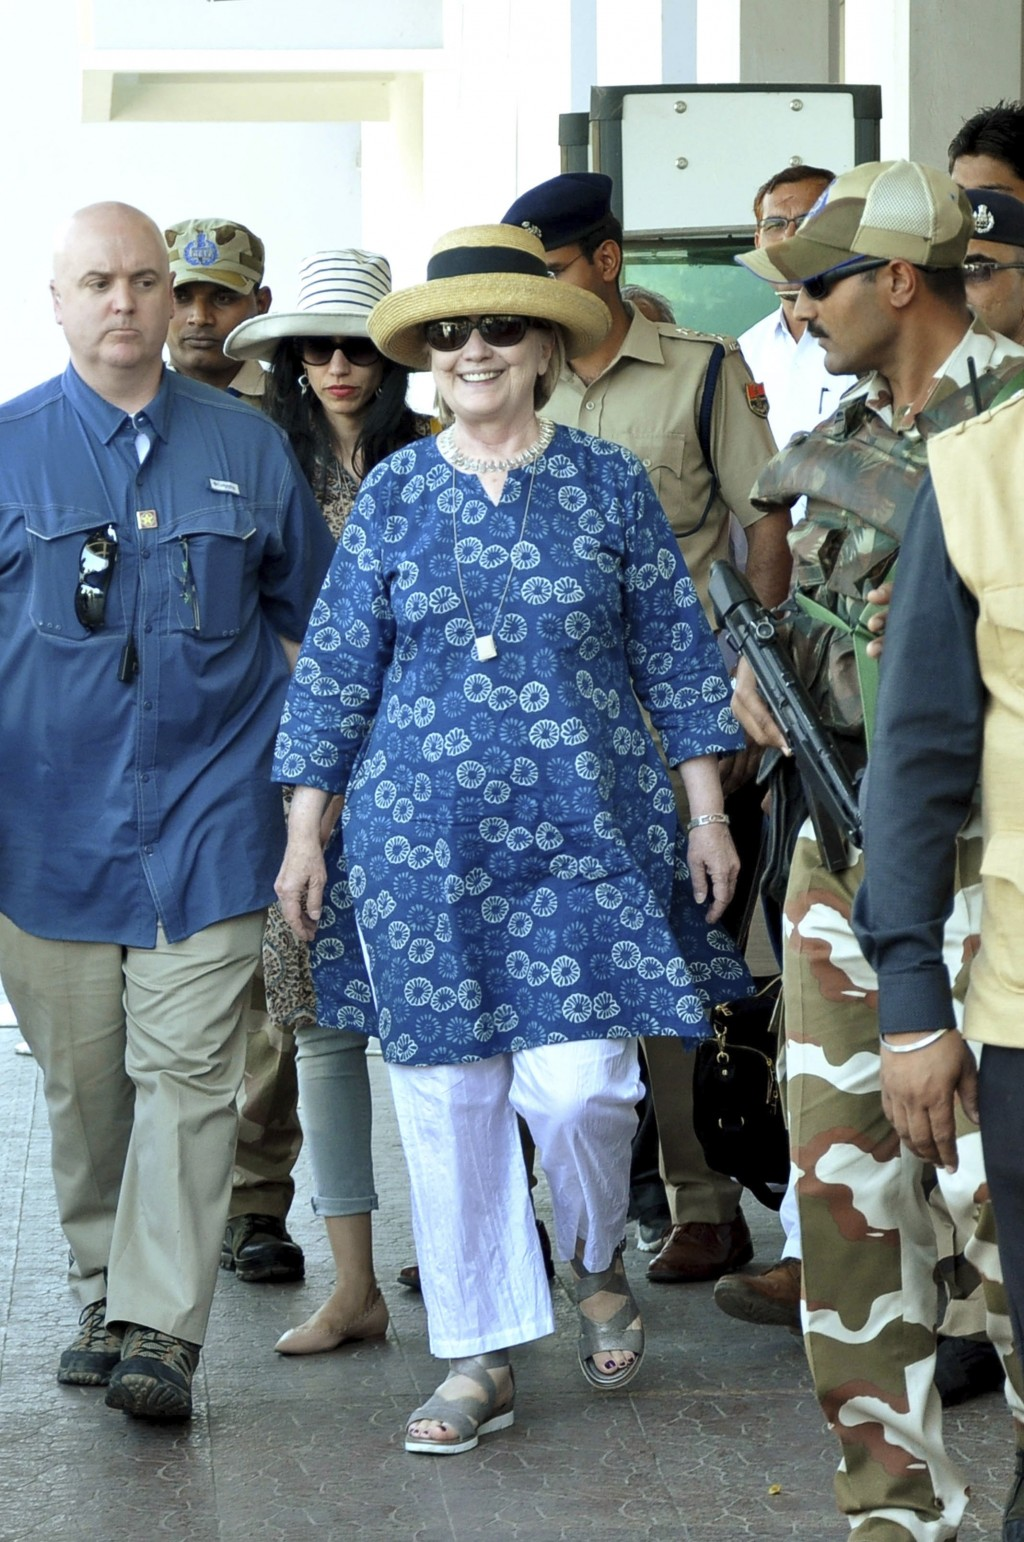 Former U.S. Secretary of State Hillary Clinton, center, comes out of the Jodhpur airport upoon her arrival in Jodhpur, Rajasthan state, India, Tuesday